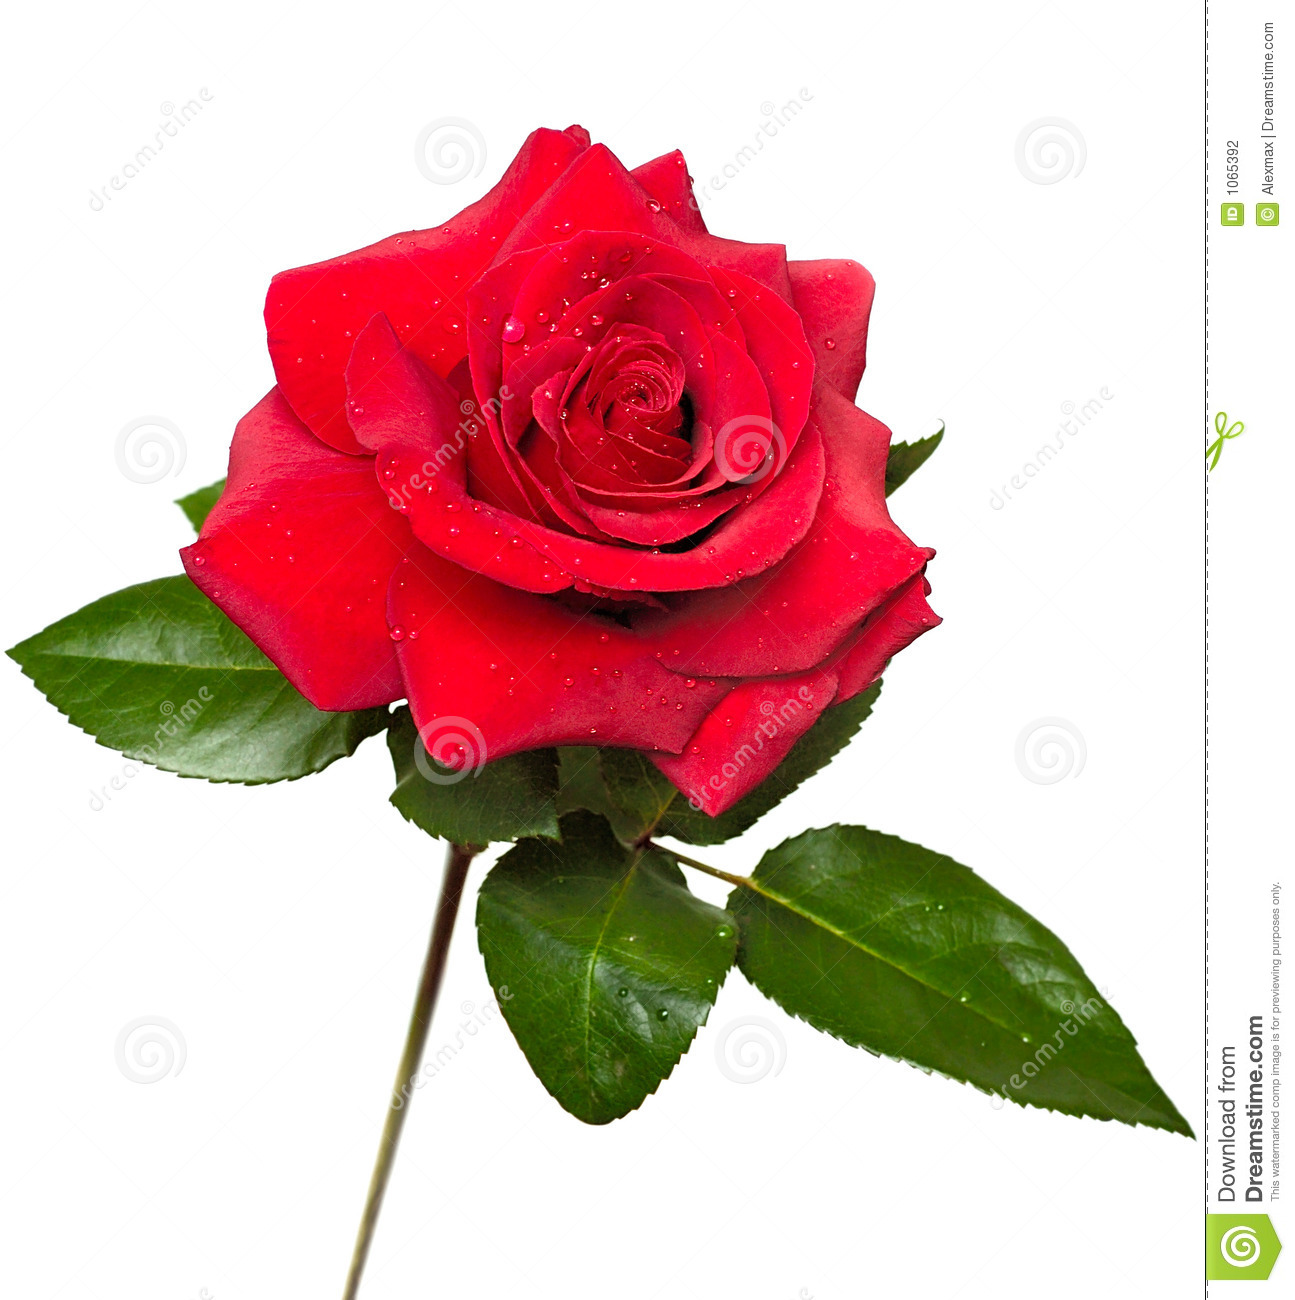 Beautiful red rose stock photo image of colourful vivid 1065392 beautiful red rose izmirmasajfo Choice Image